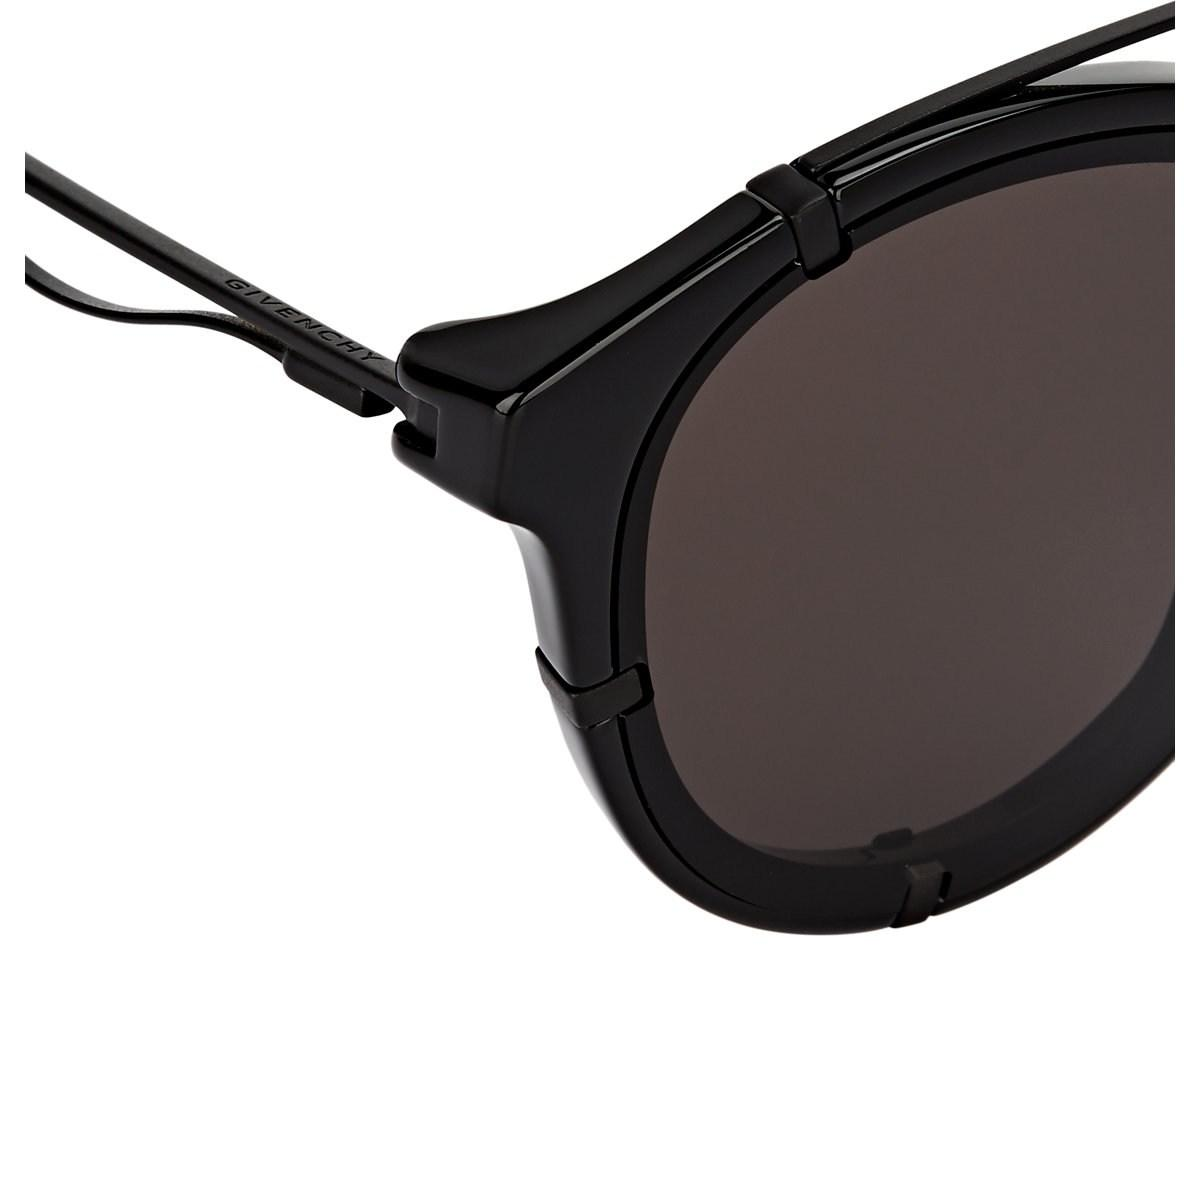 d5352cc7275 Givenchy - Black 7088 s Sunglasses - Lyst. View fullscreen